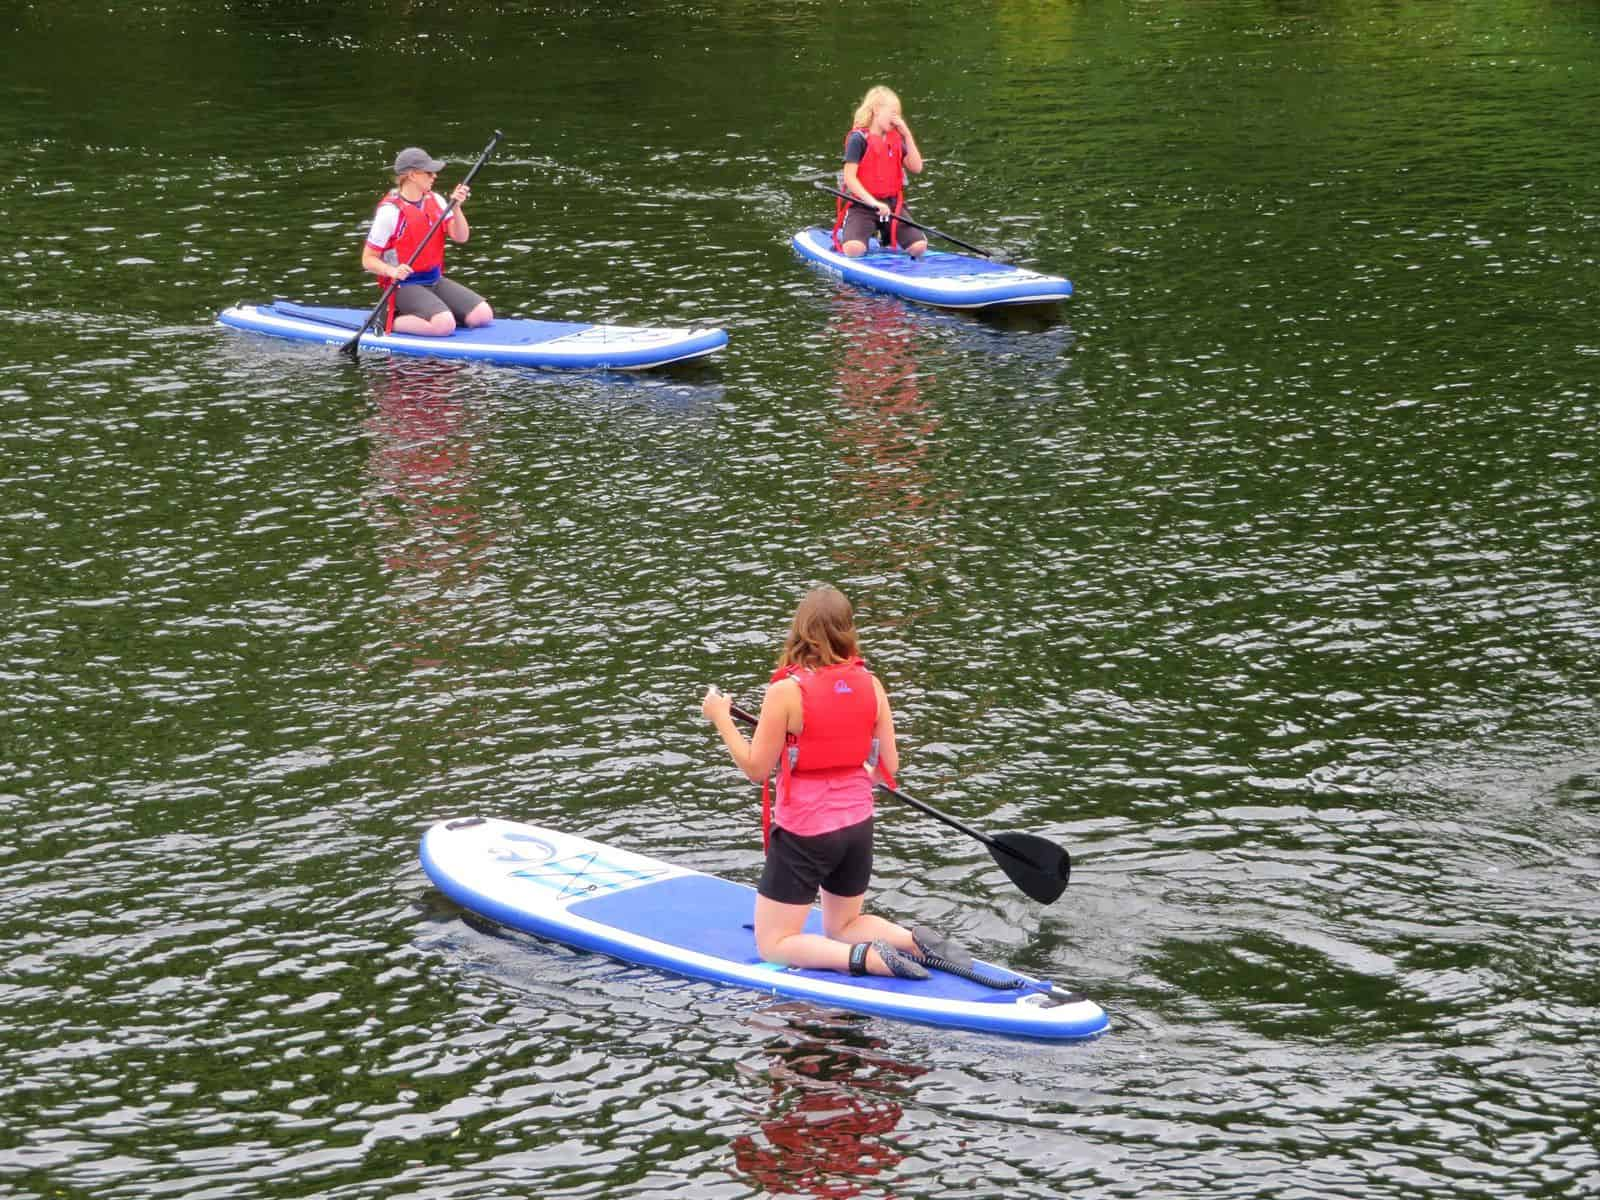 Inspire2Adventure SUP lesson kneeling on SUP